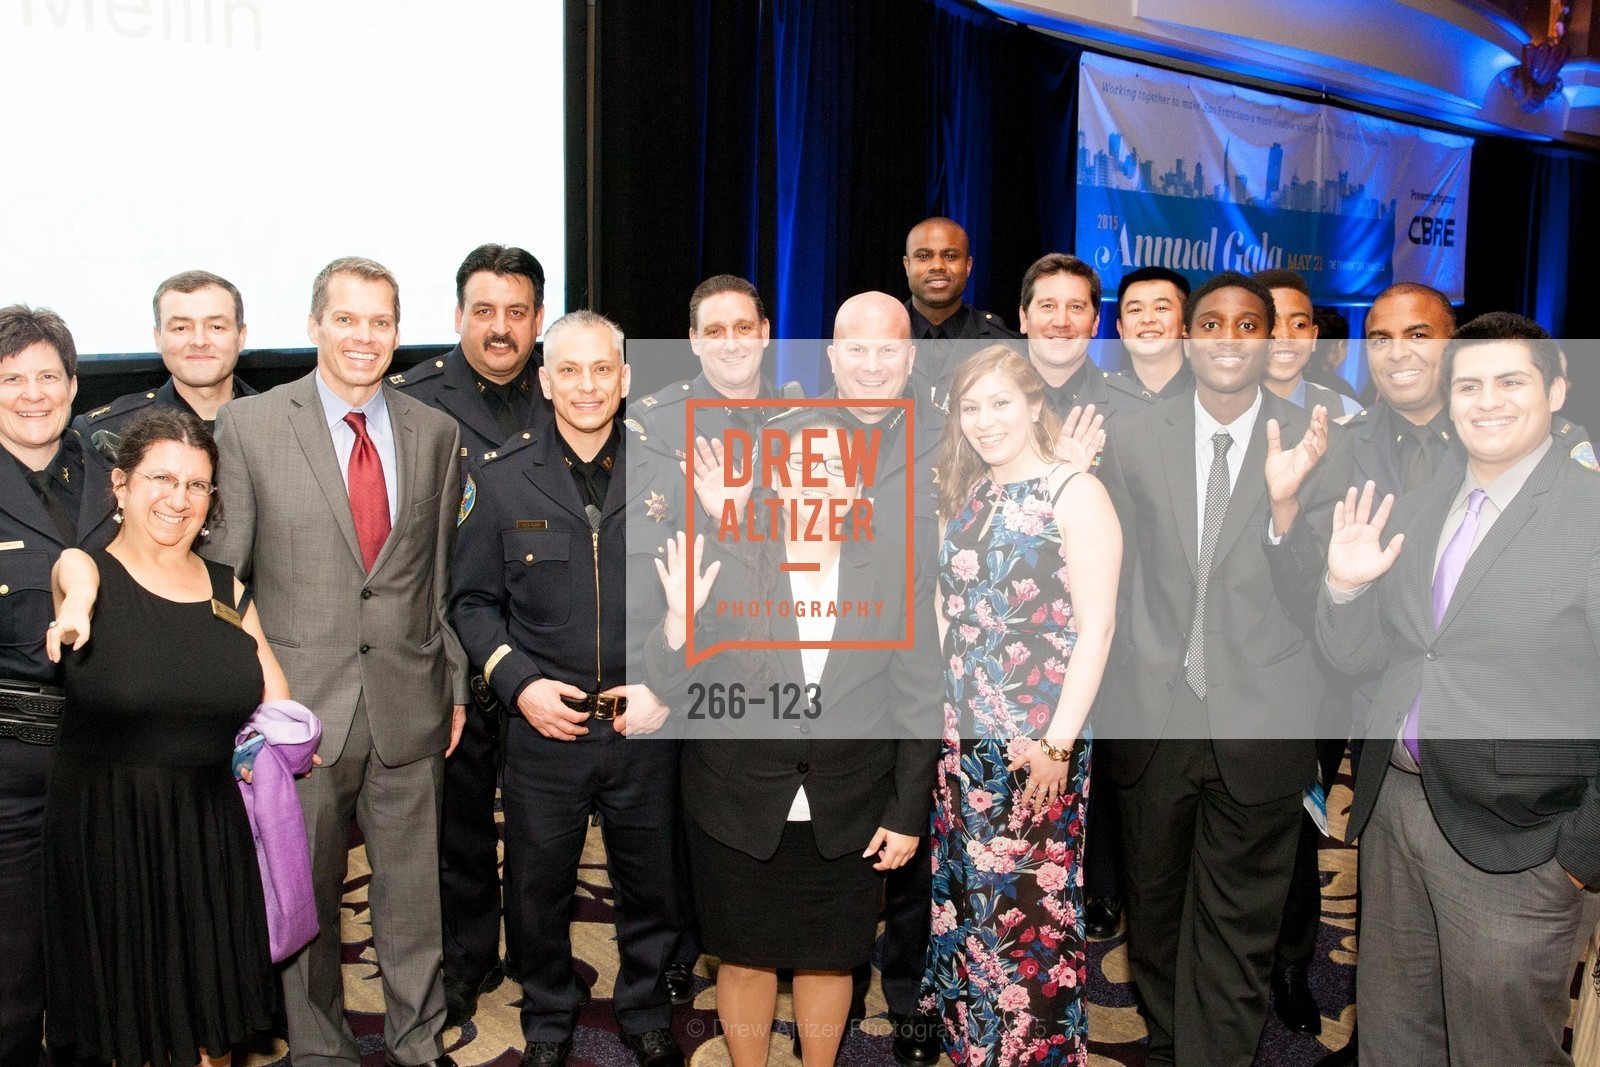 Denise Schmitt, Jennifer Berger, Hector Sainuz, Rob Connolly, David Perea, David Lazar, Greg McEachern, Carmen Sosa, Greg Suhr, Yuri Huerta, Jason Duncan, Kim Lee, Khari Brown, Richard Hanzy, Troy Danderfield, Joe Armijo, 2015 Boys and Girls Club Annual Gala, The Fairmont San Francisco. 950 Mason St, May 20th, 2015,Drew Altizer, Drew Altizer Photography, full-service event agency, private events, San Francisco photographer, photographer California